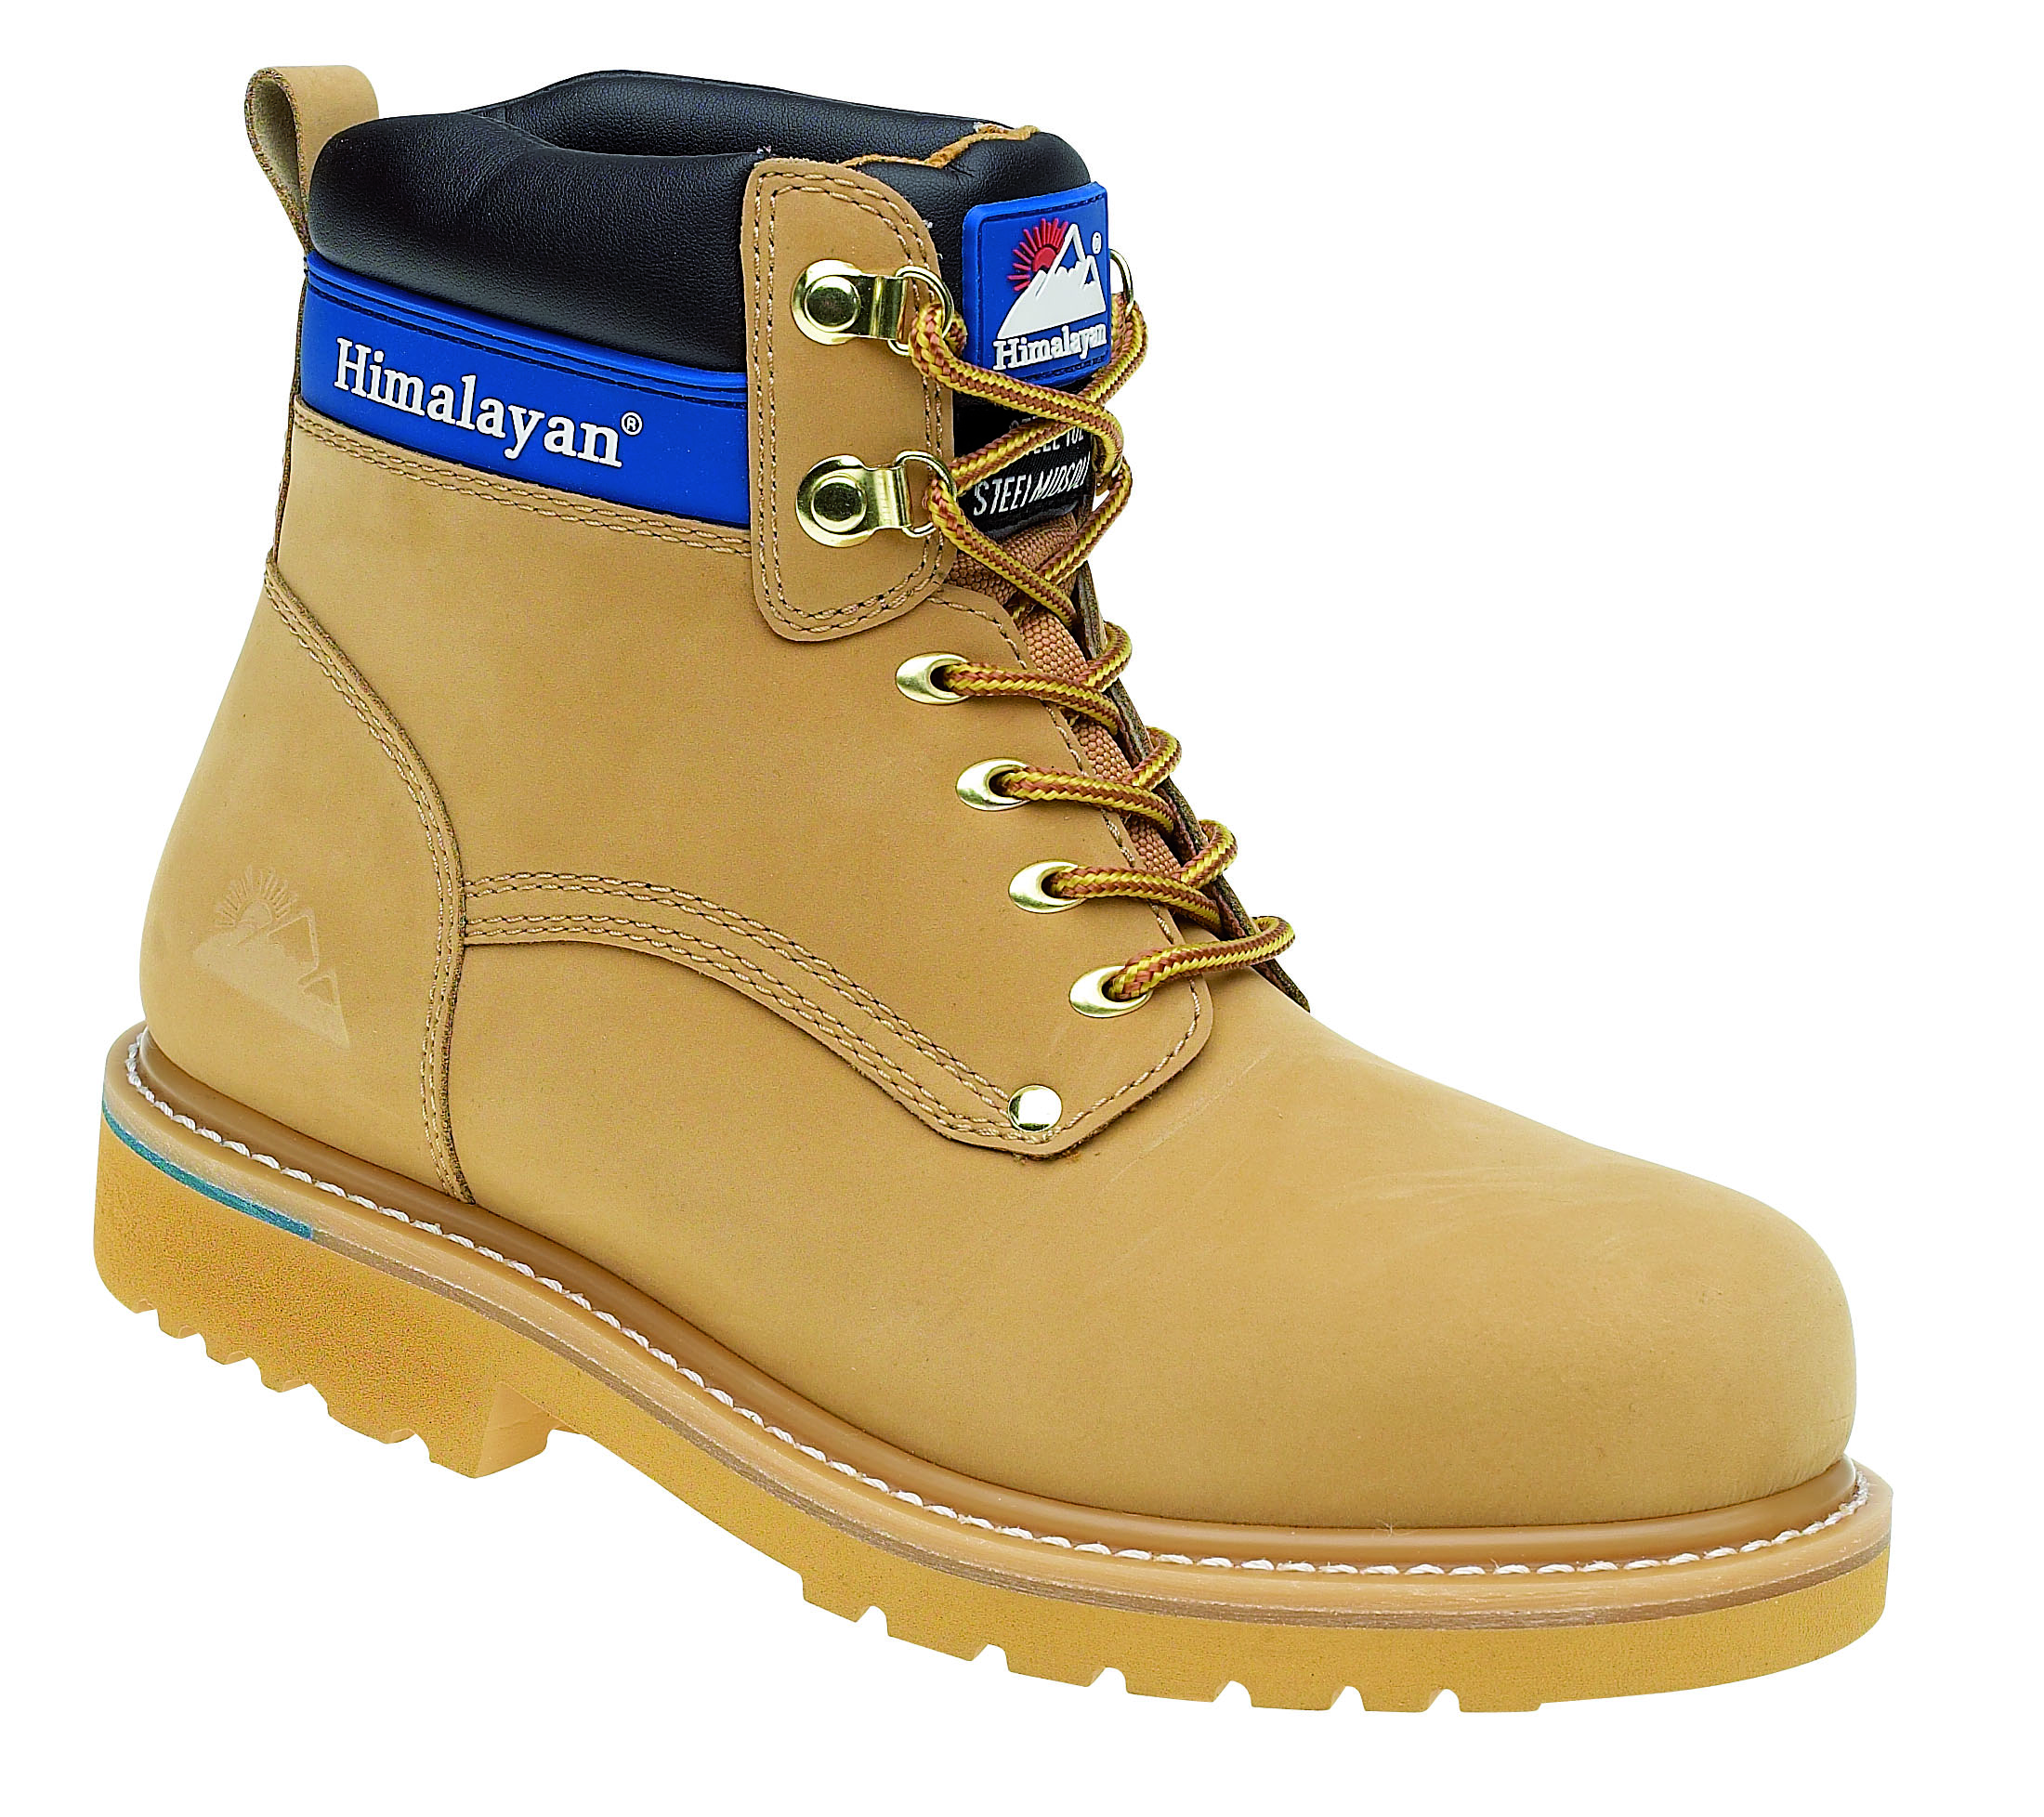 HIMALAYAN Honey Nubuck Goodyear Welted Safety Boot with Midsole